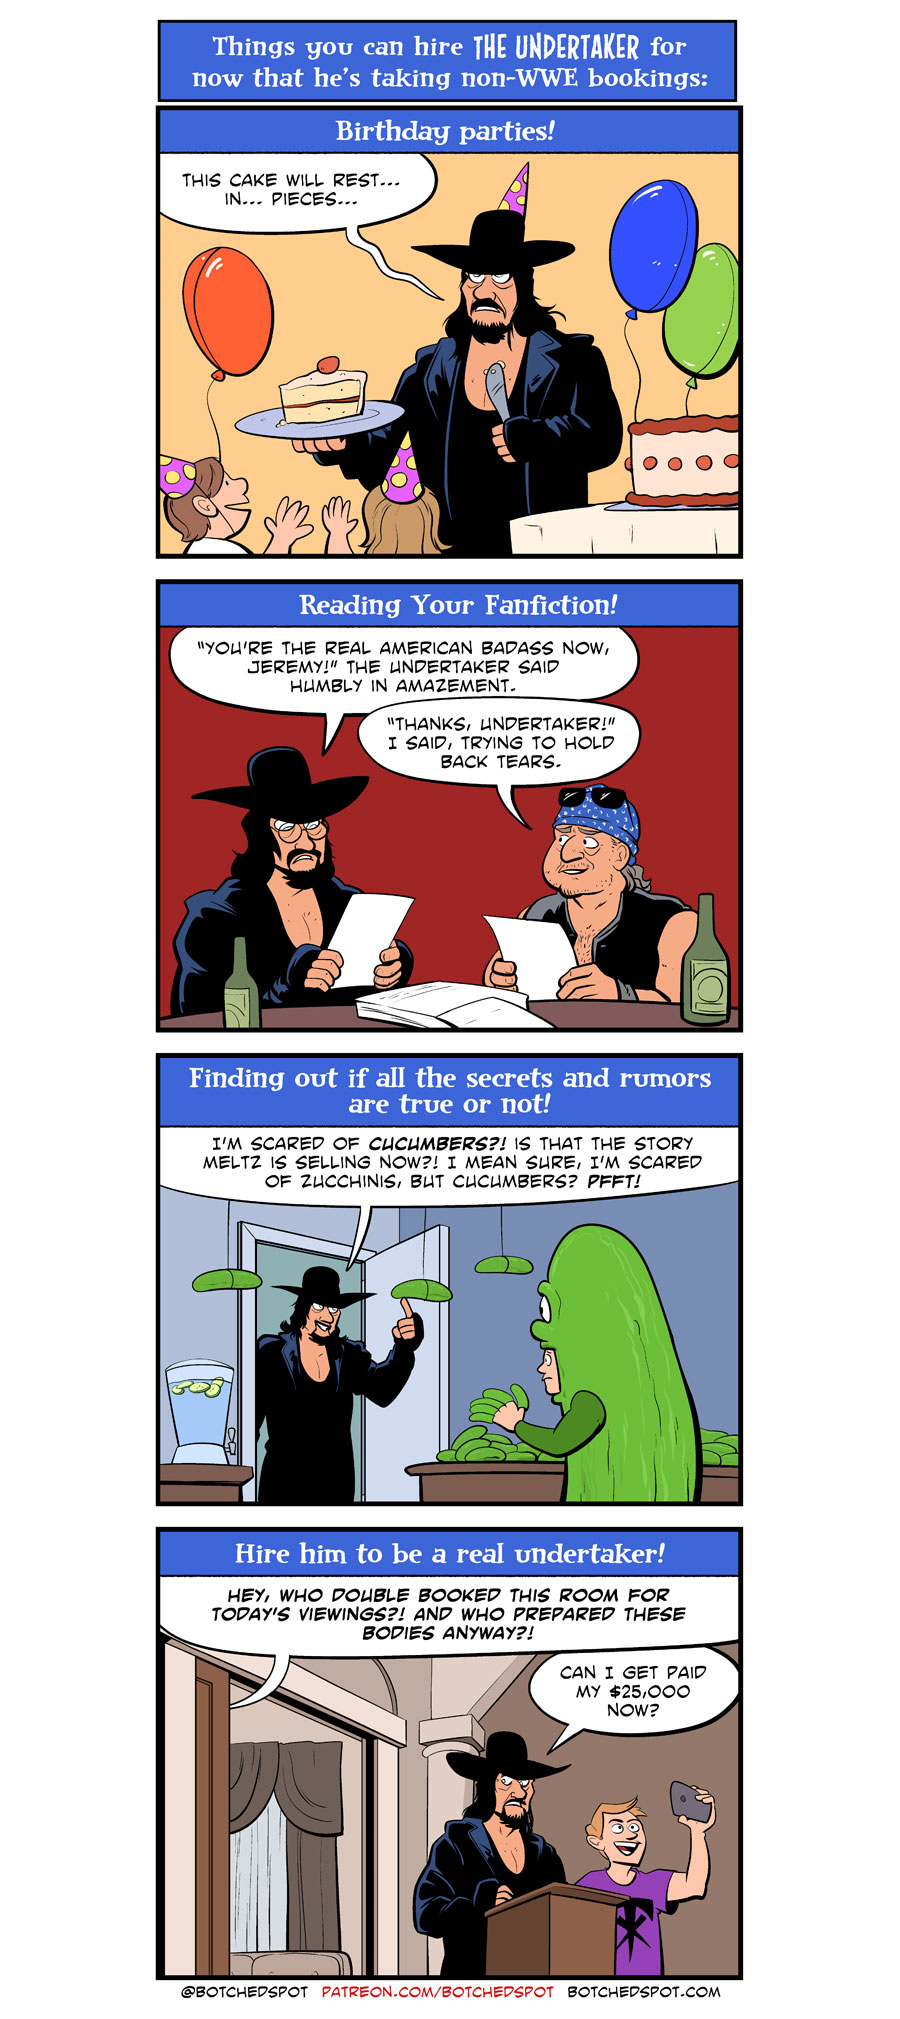 Things You Can Hire The Undertaker For!